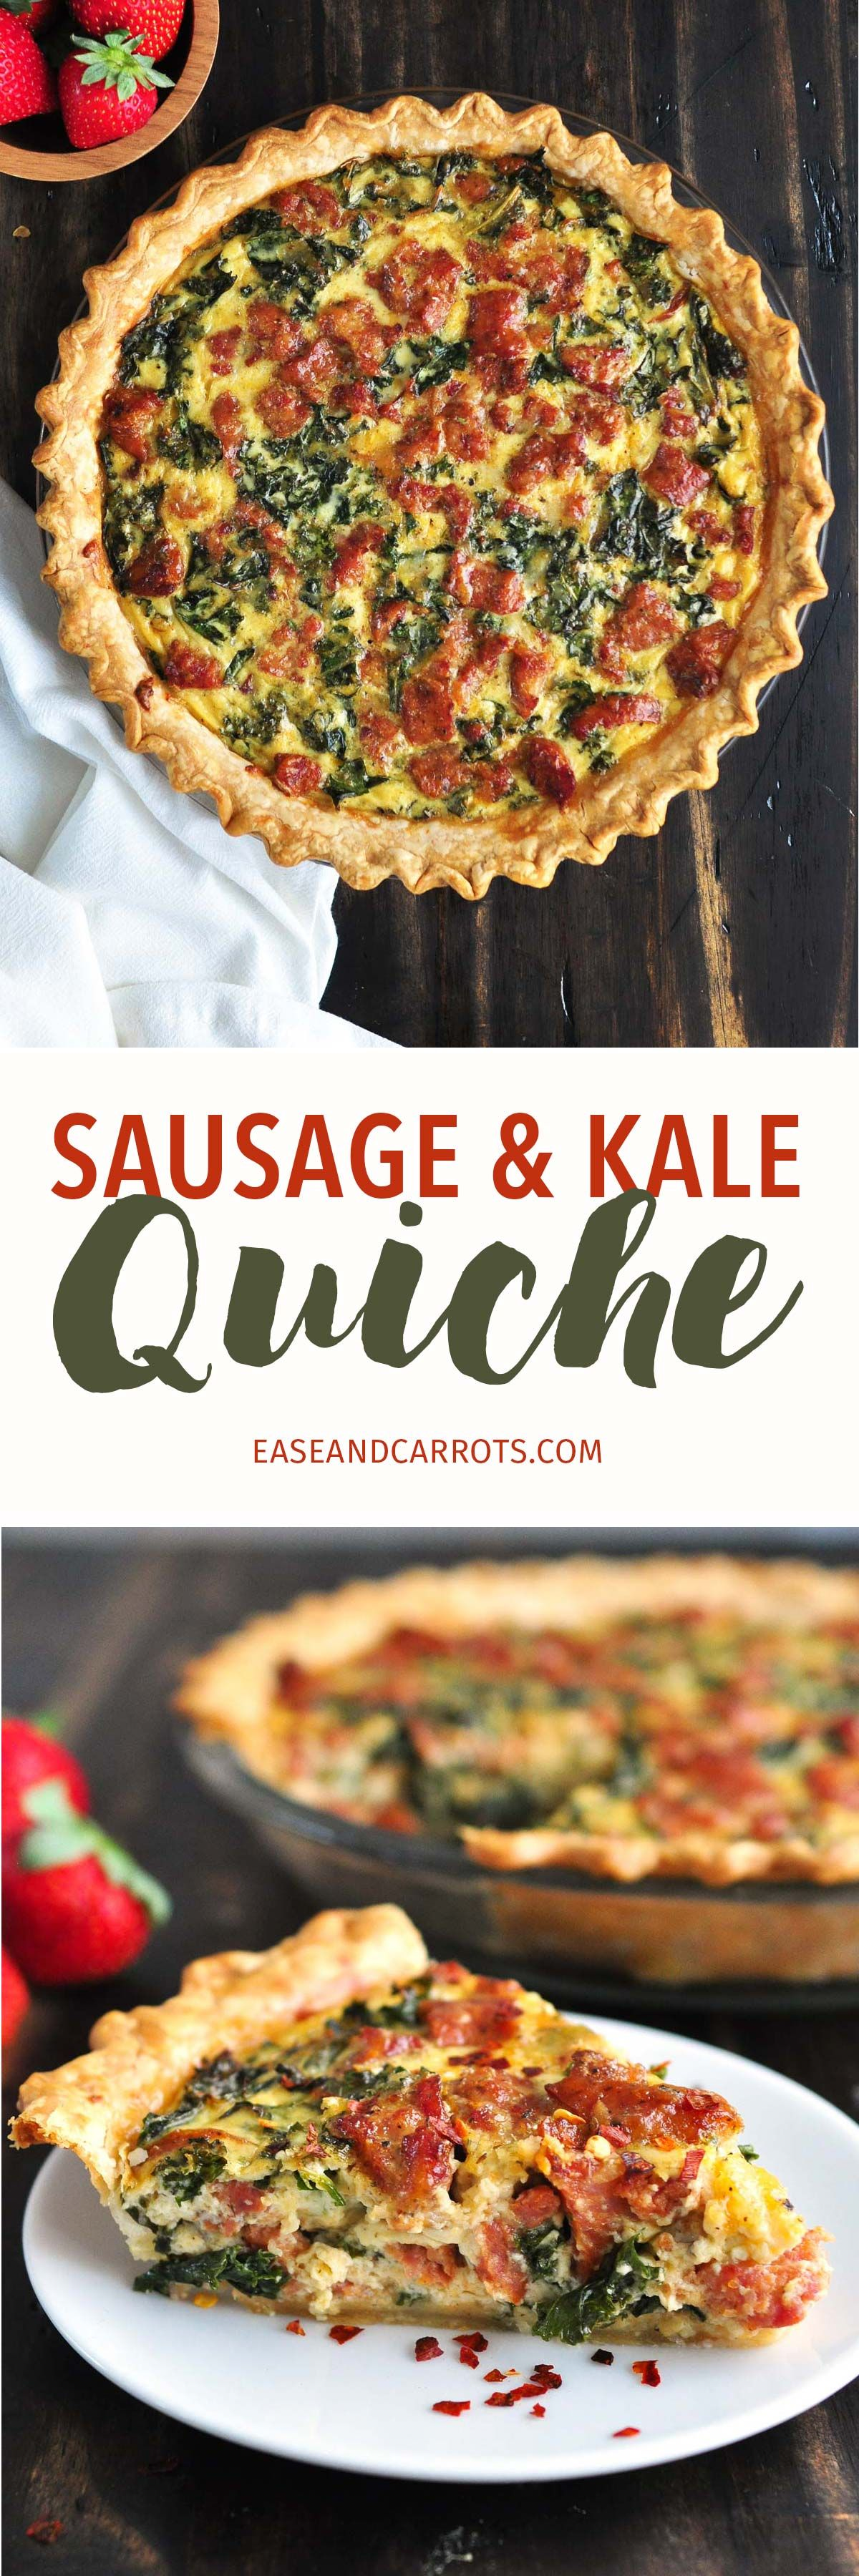 A Super Easy Hearty Quiche Recipe That Is Great For Sunday Brunch Or Even Weeknight Dinner